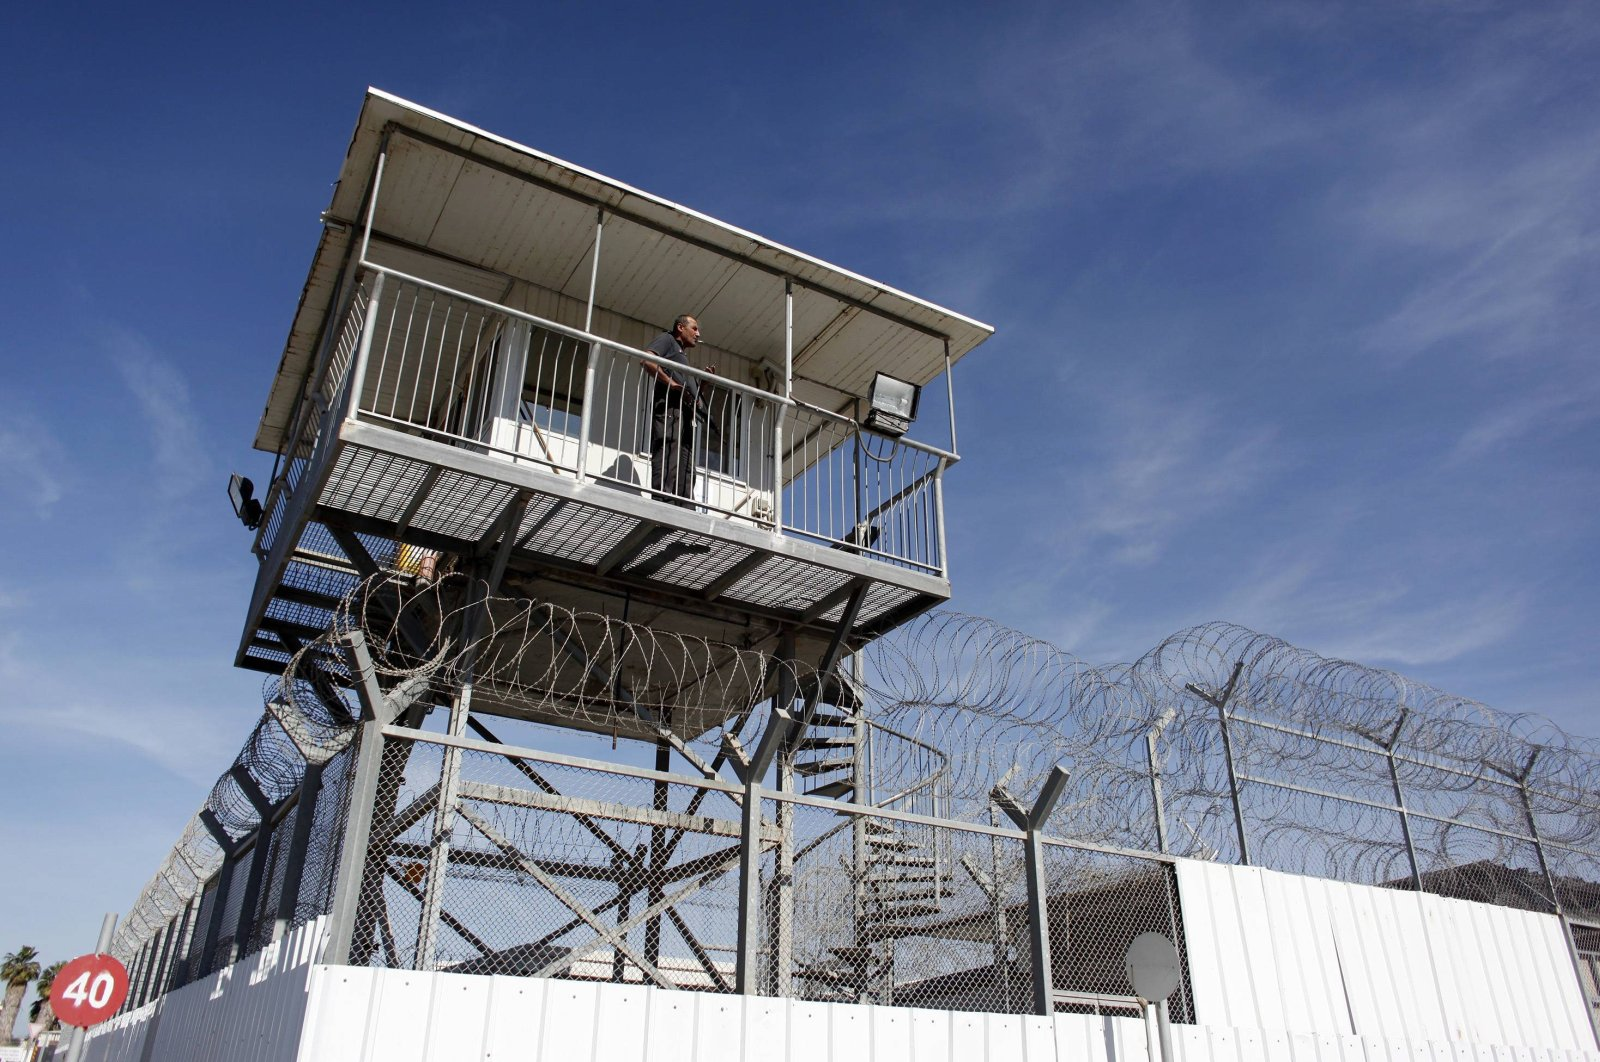 An Israeli prison guard keeps watch from a tower at Ayalon prison in Ramle near Tel Aviv, Israel, Feb. 13, 2013. (Reuters Photo)